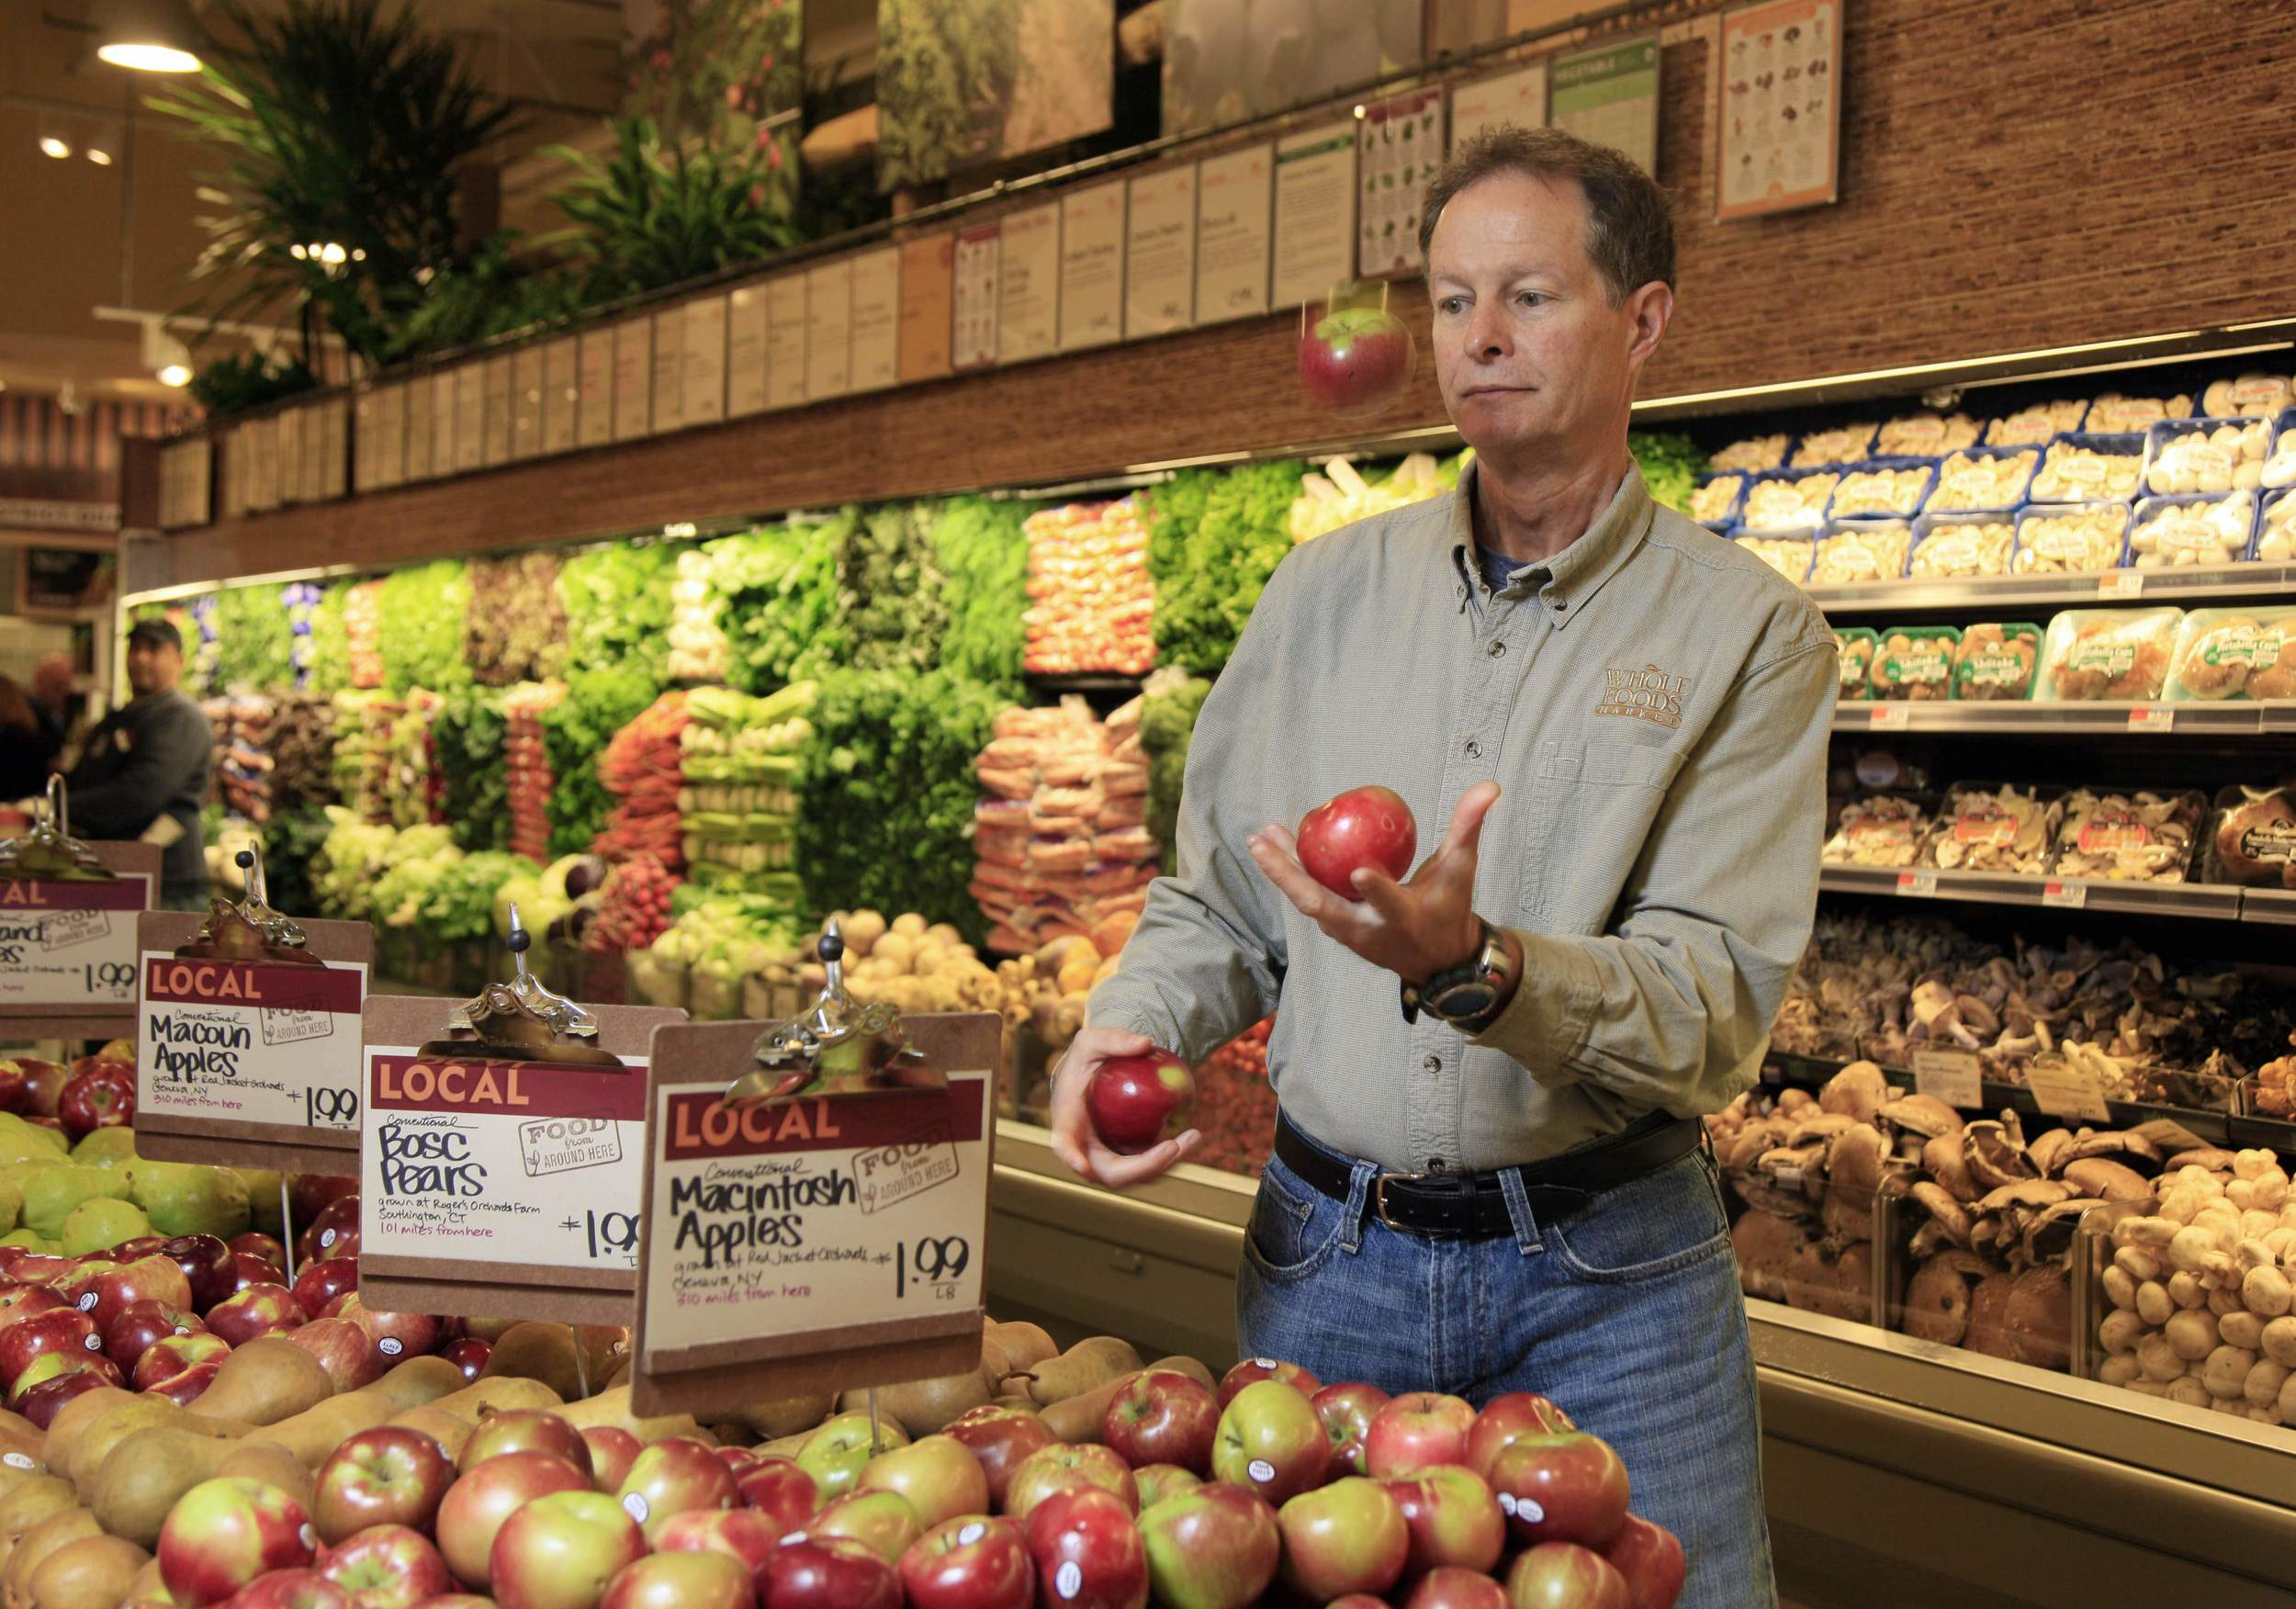 Whole Foods: A work of art in many ways. Founder John Mackie juggling the fruit in the museum of fresh produce.